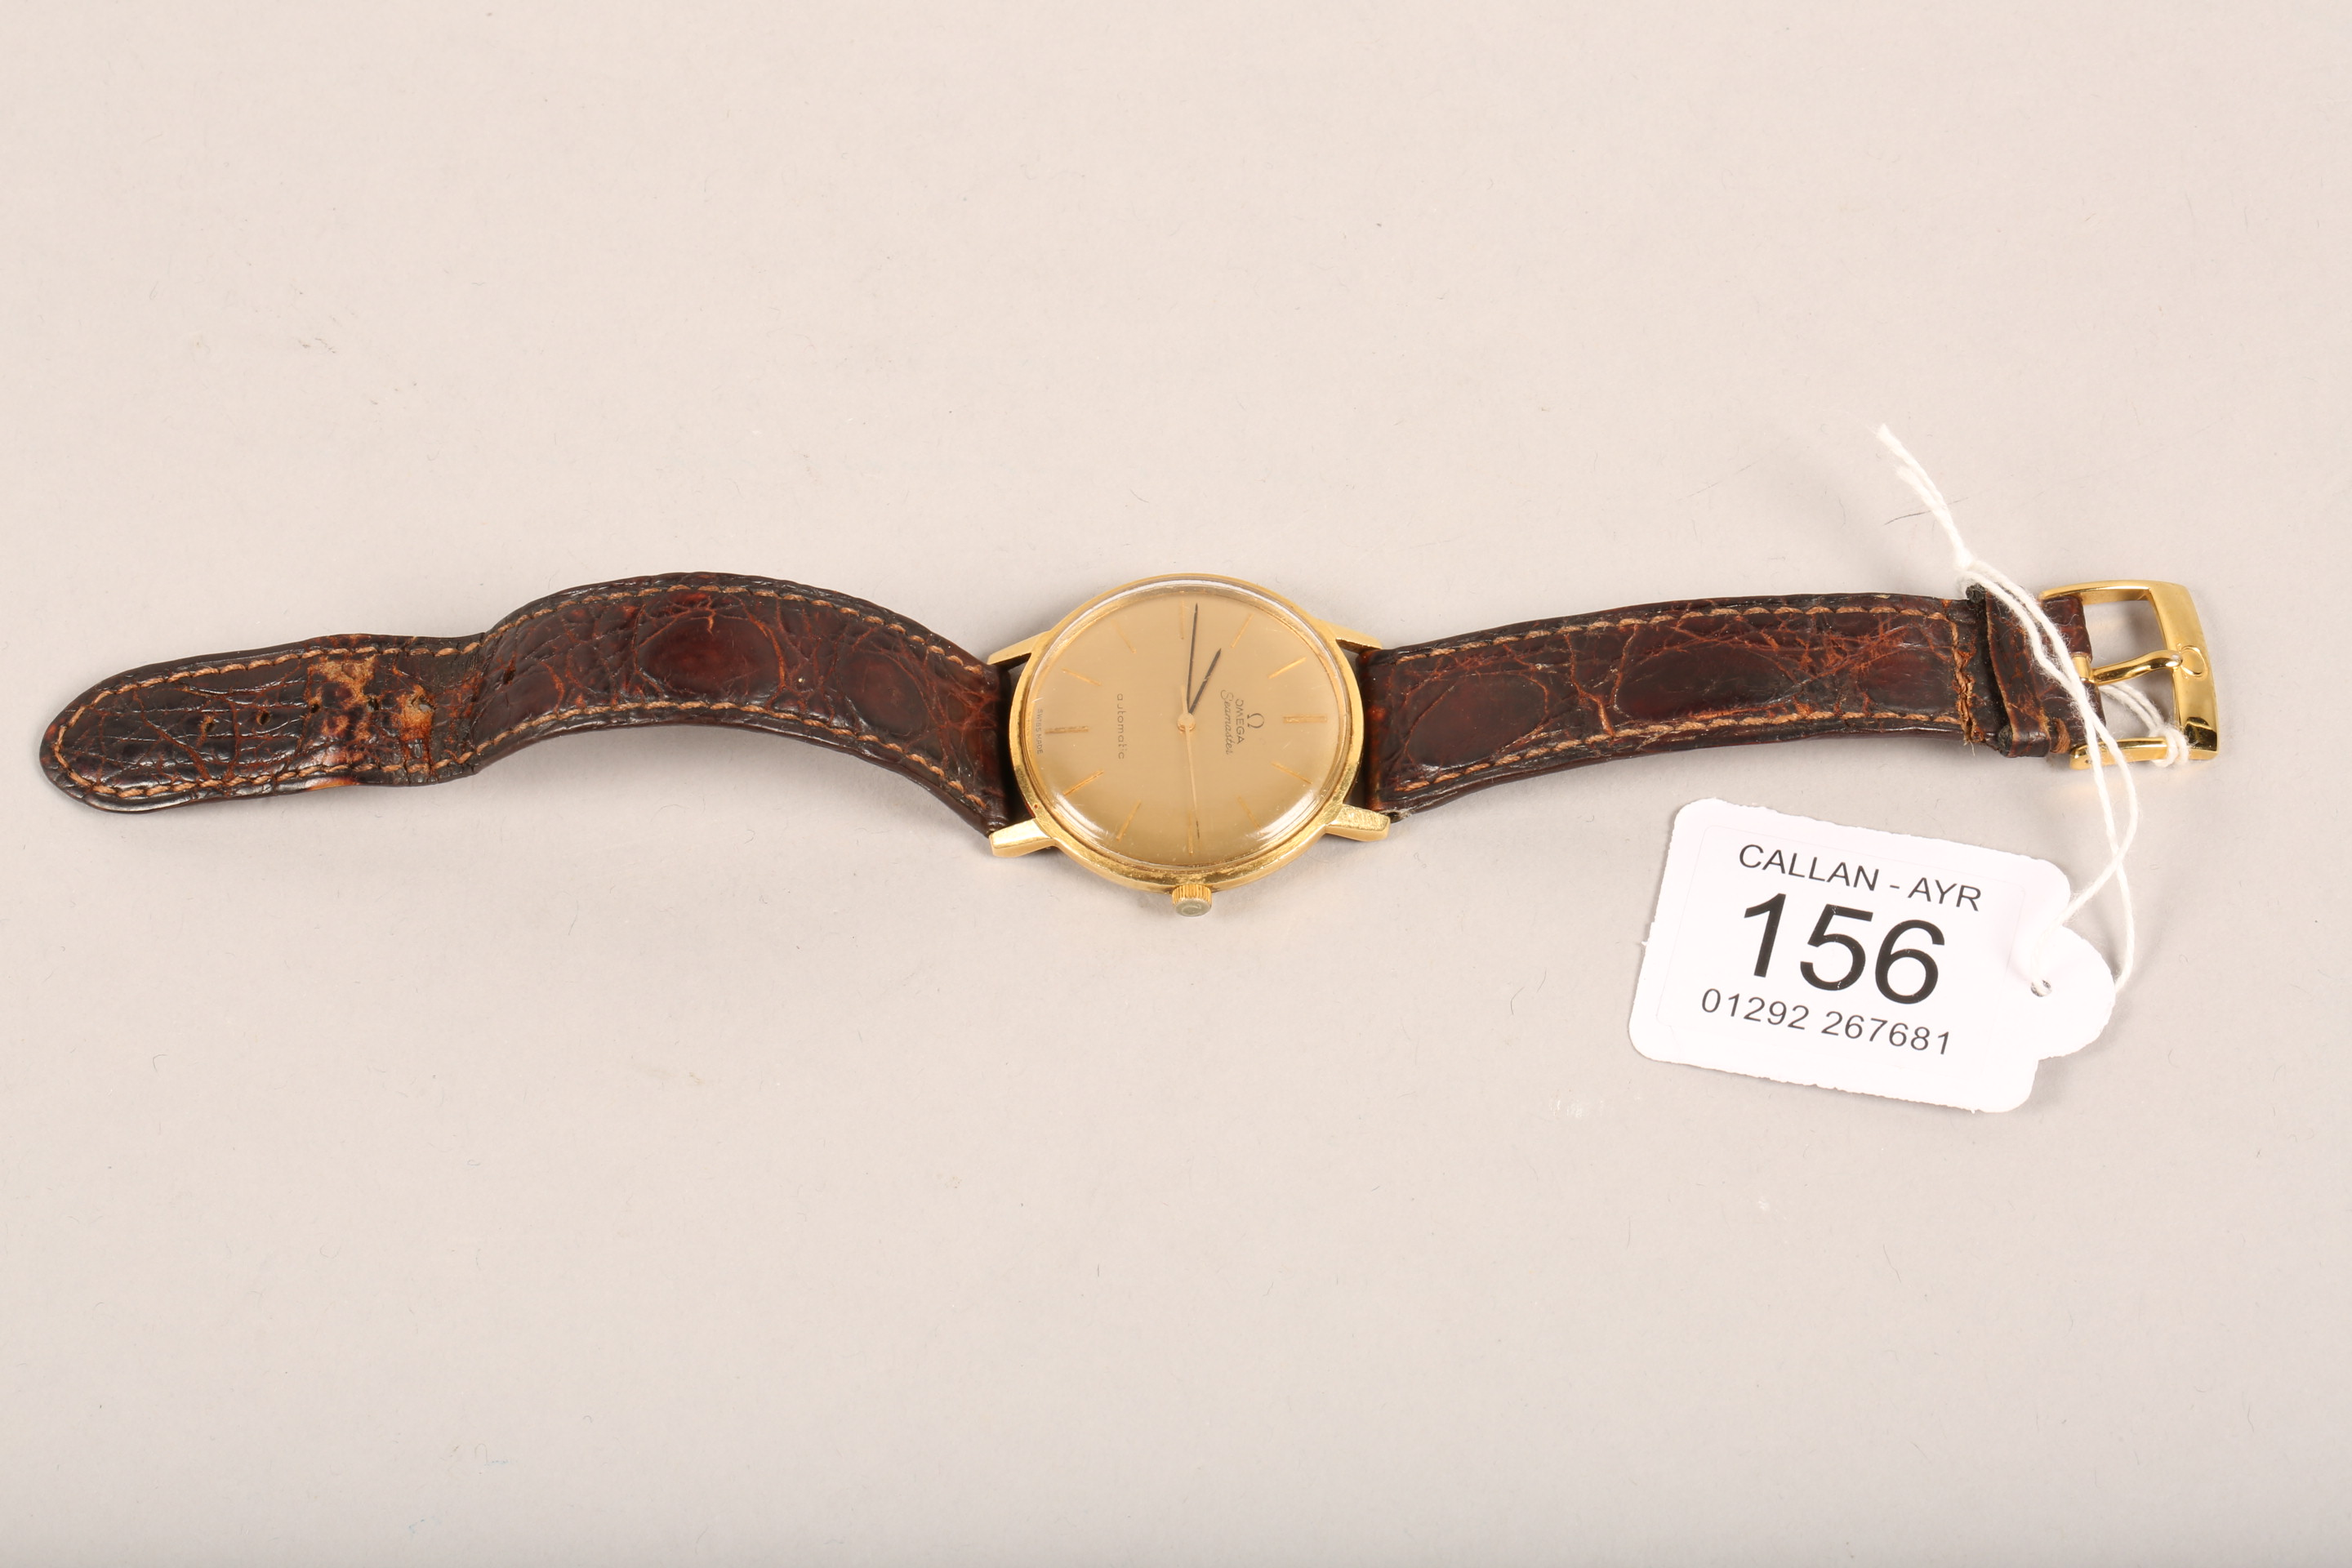 Gents 9 carat gold Omega Seamaster automatic wrist watch, dial with hour markers and sweeping - Image 6 of 10